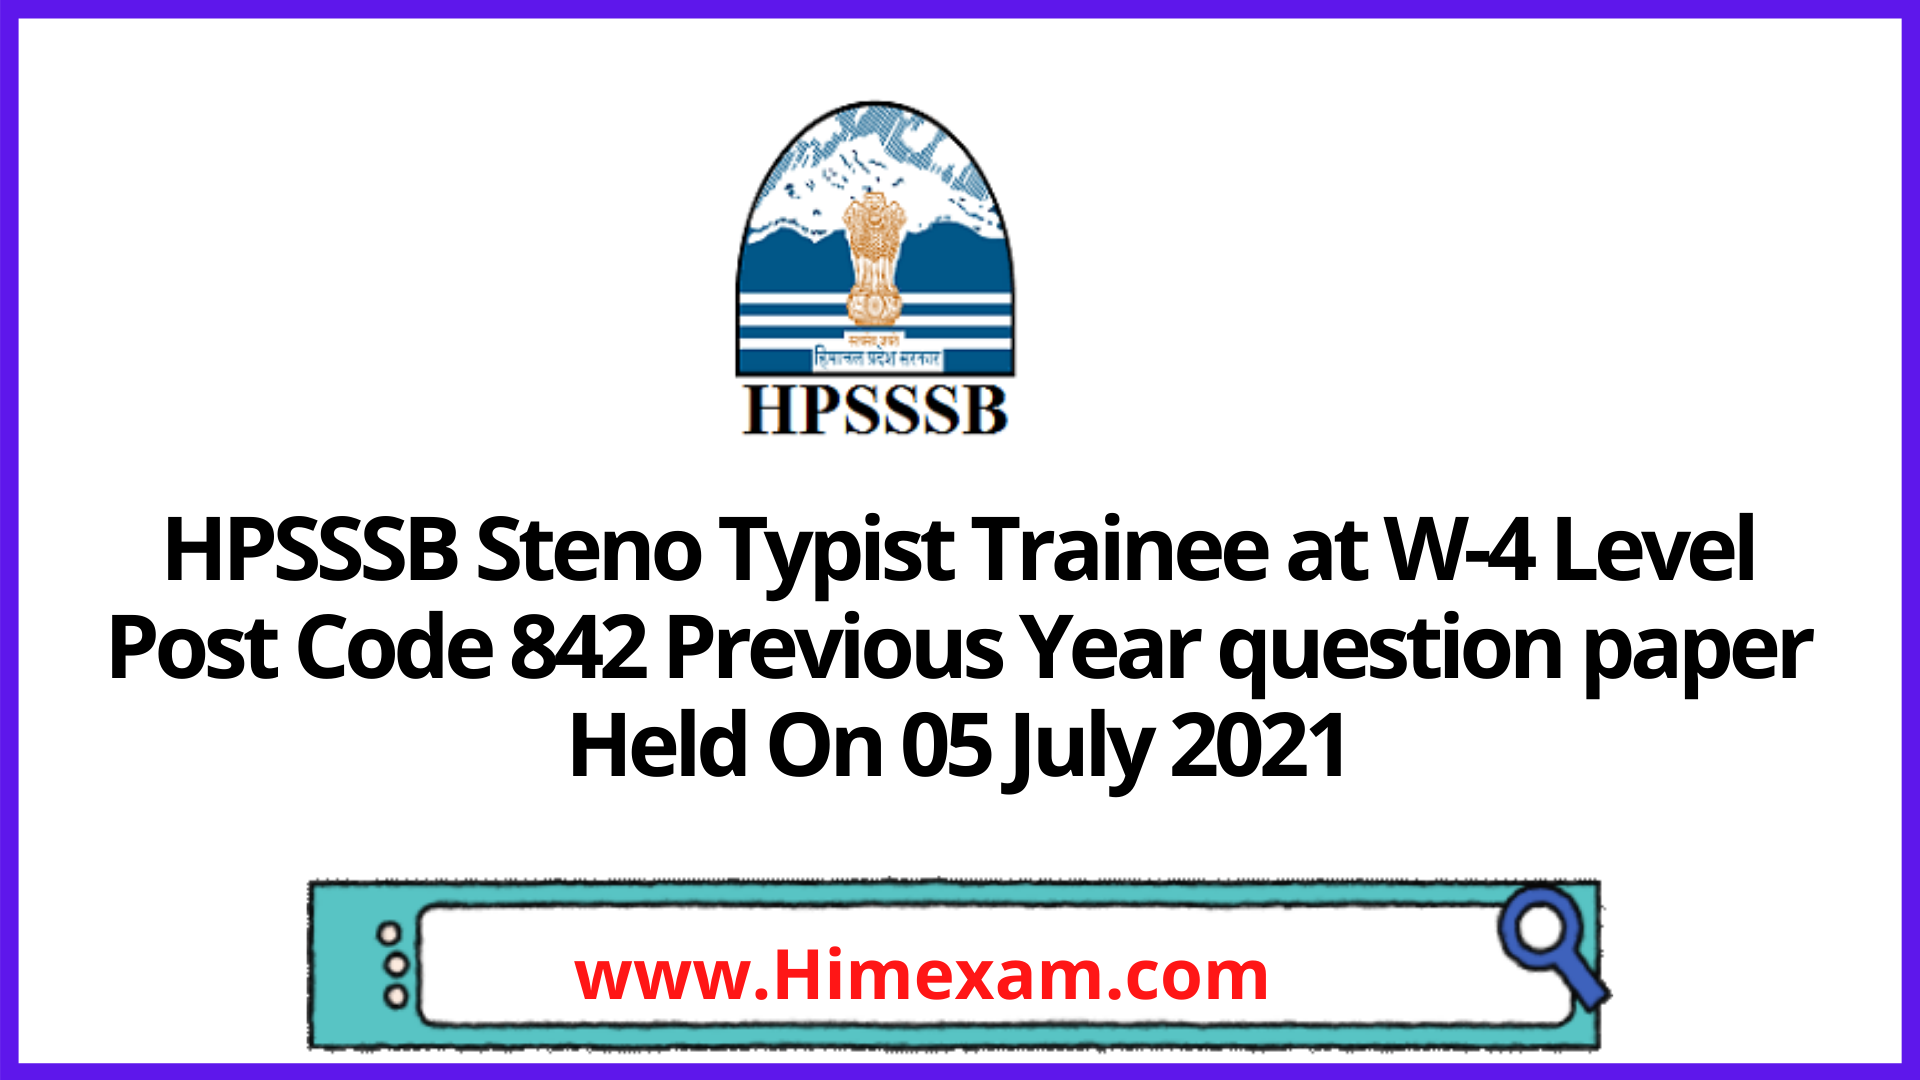 HPSSSB  Steno Typist Trainee at W-4 Level Post Code 842  Previous Year question paper Held On 05  July 2021